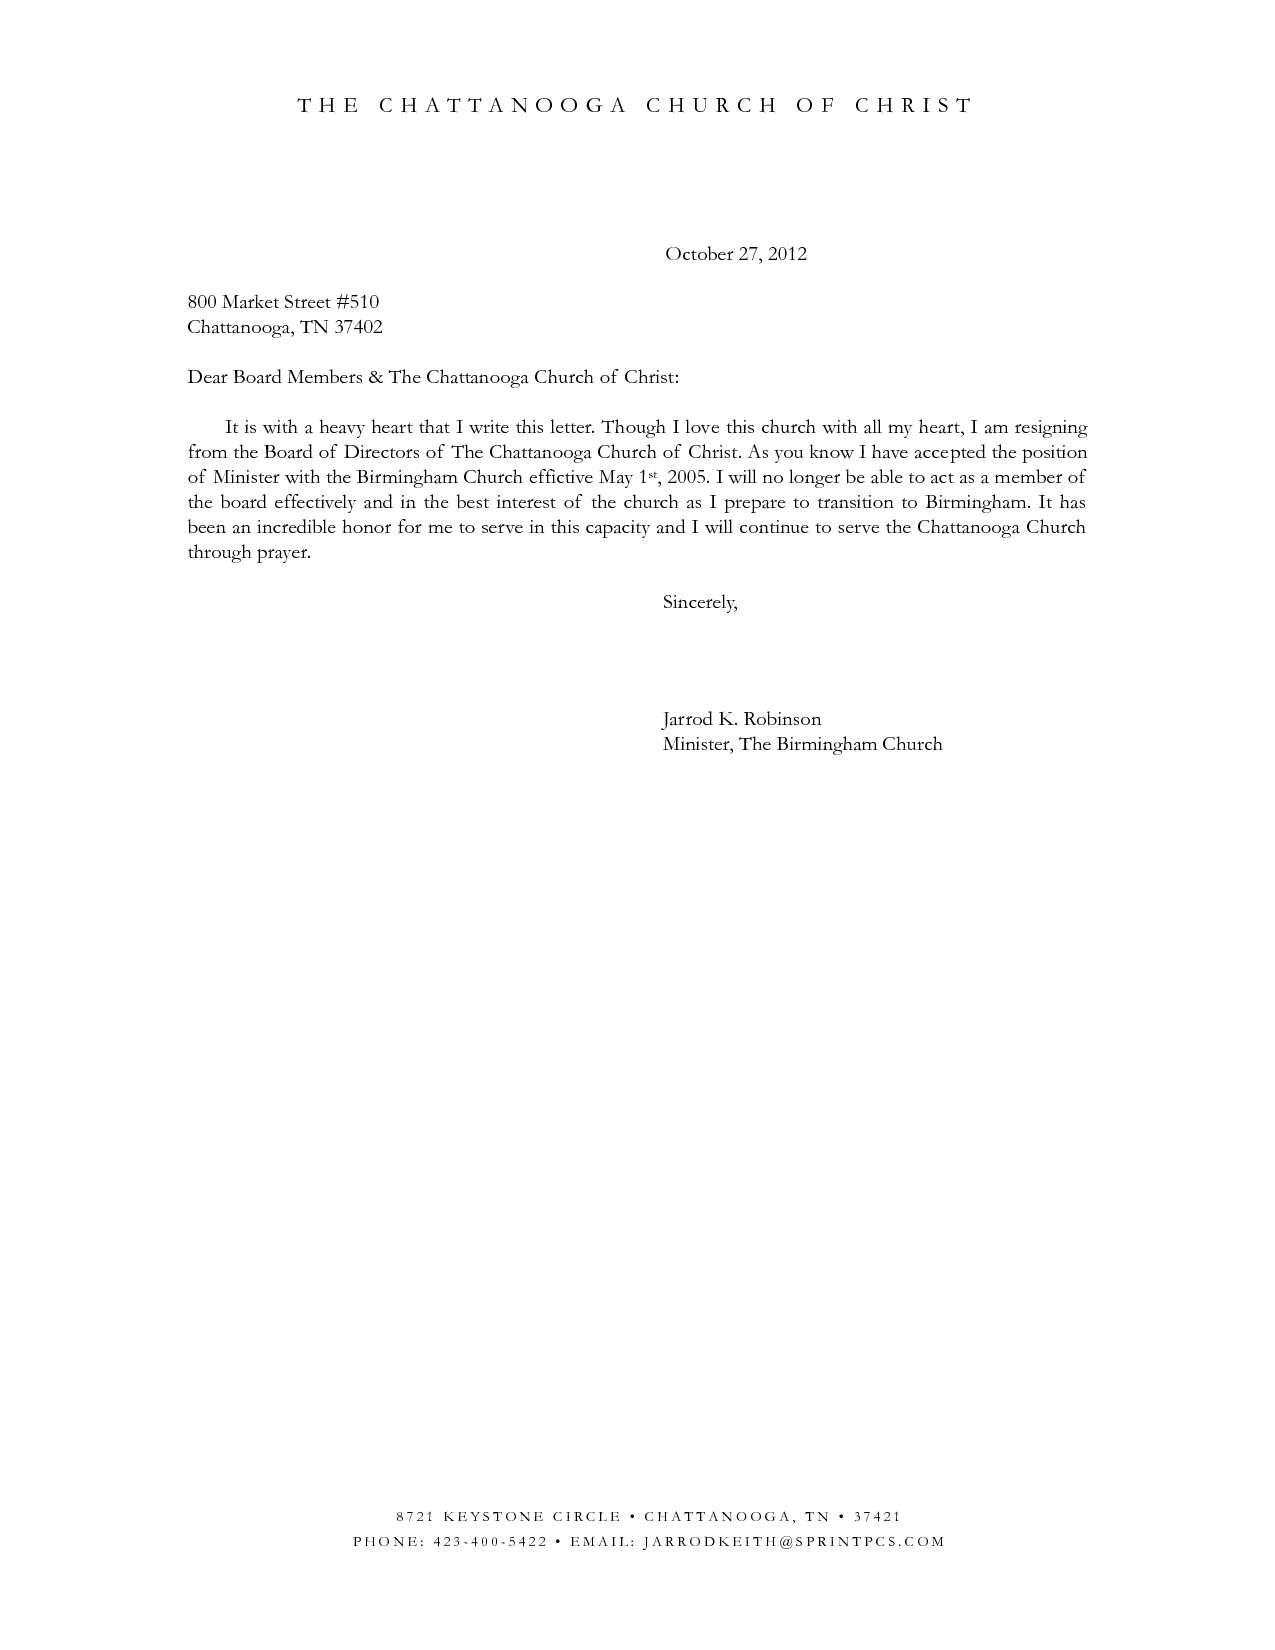 Free Resignation Letter Template Word - Free Resignation Letter Template Word Best Sample Cover Letter